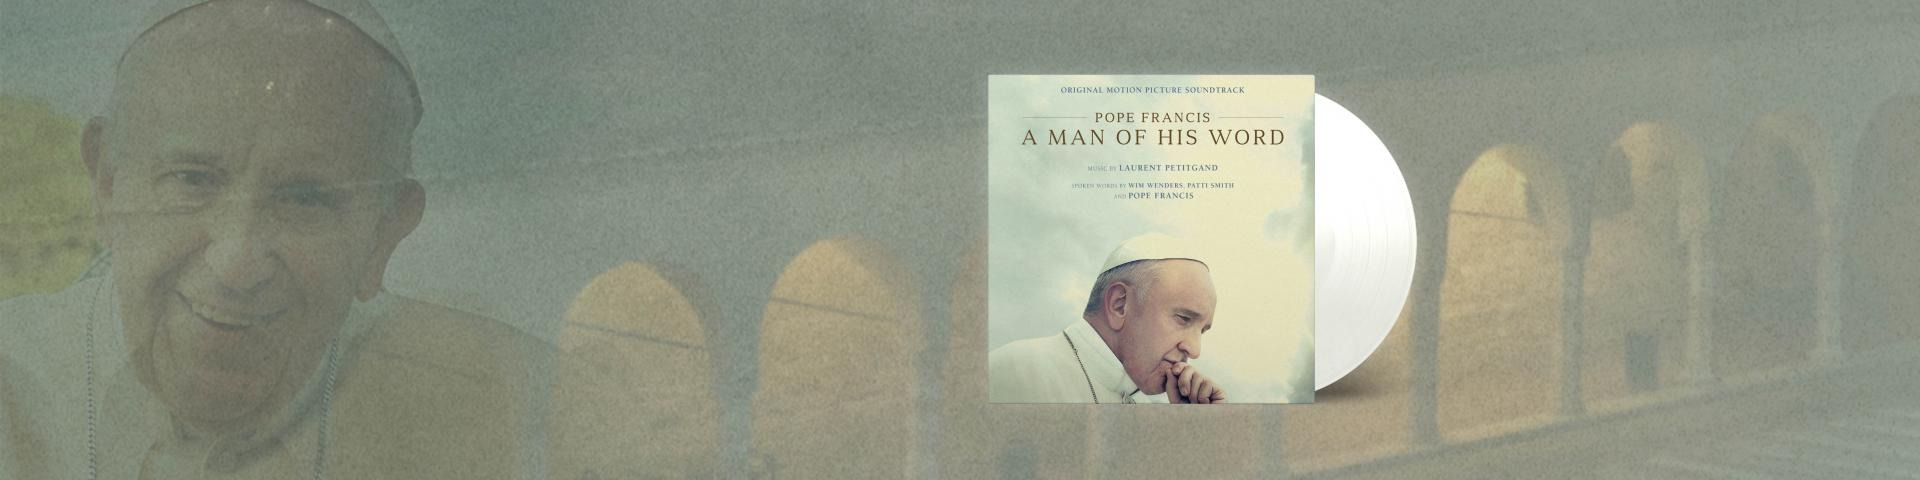 ORIGINAL SOUNDTRACK - POPE FRANCIS